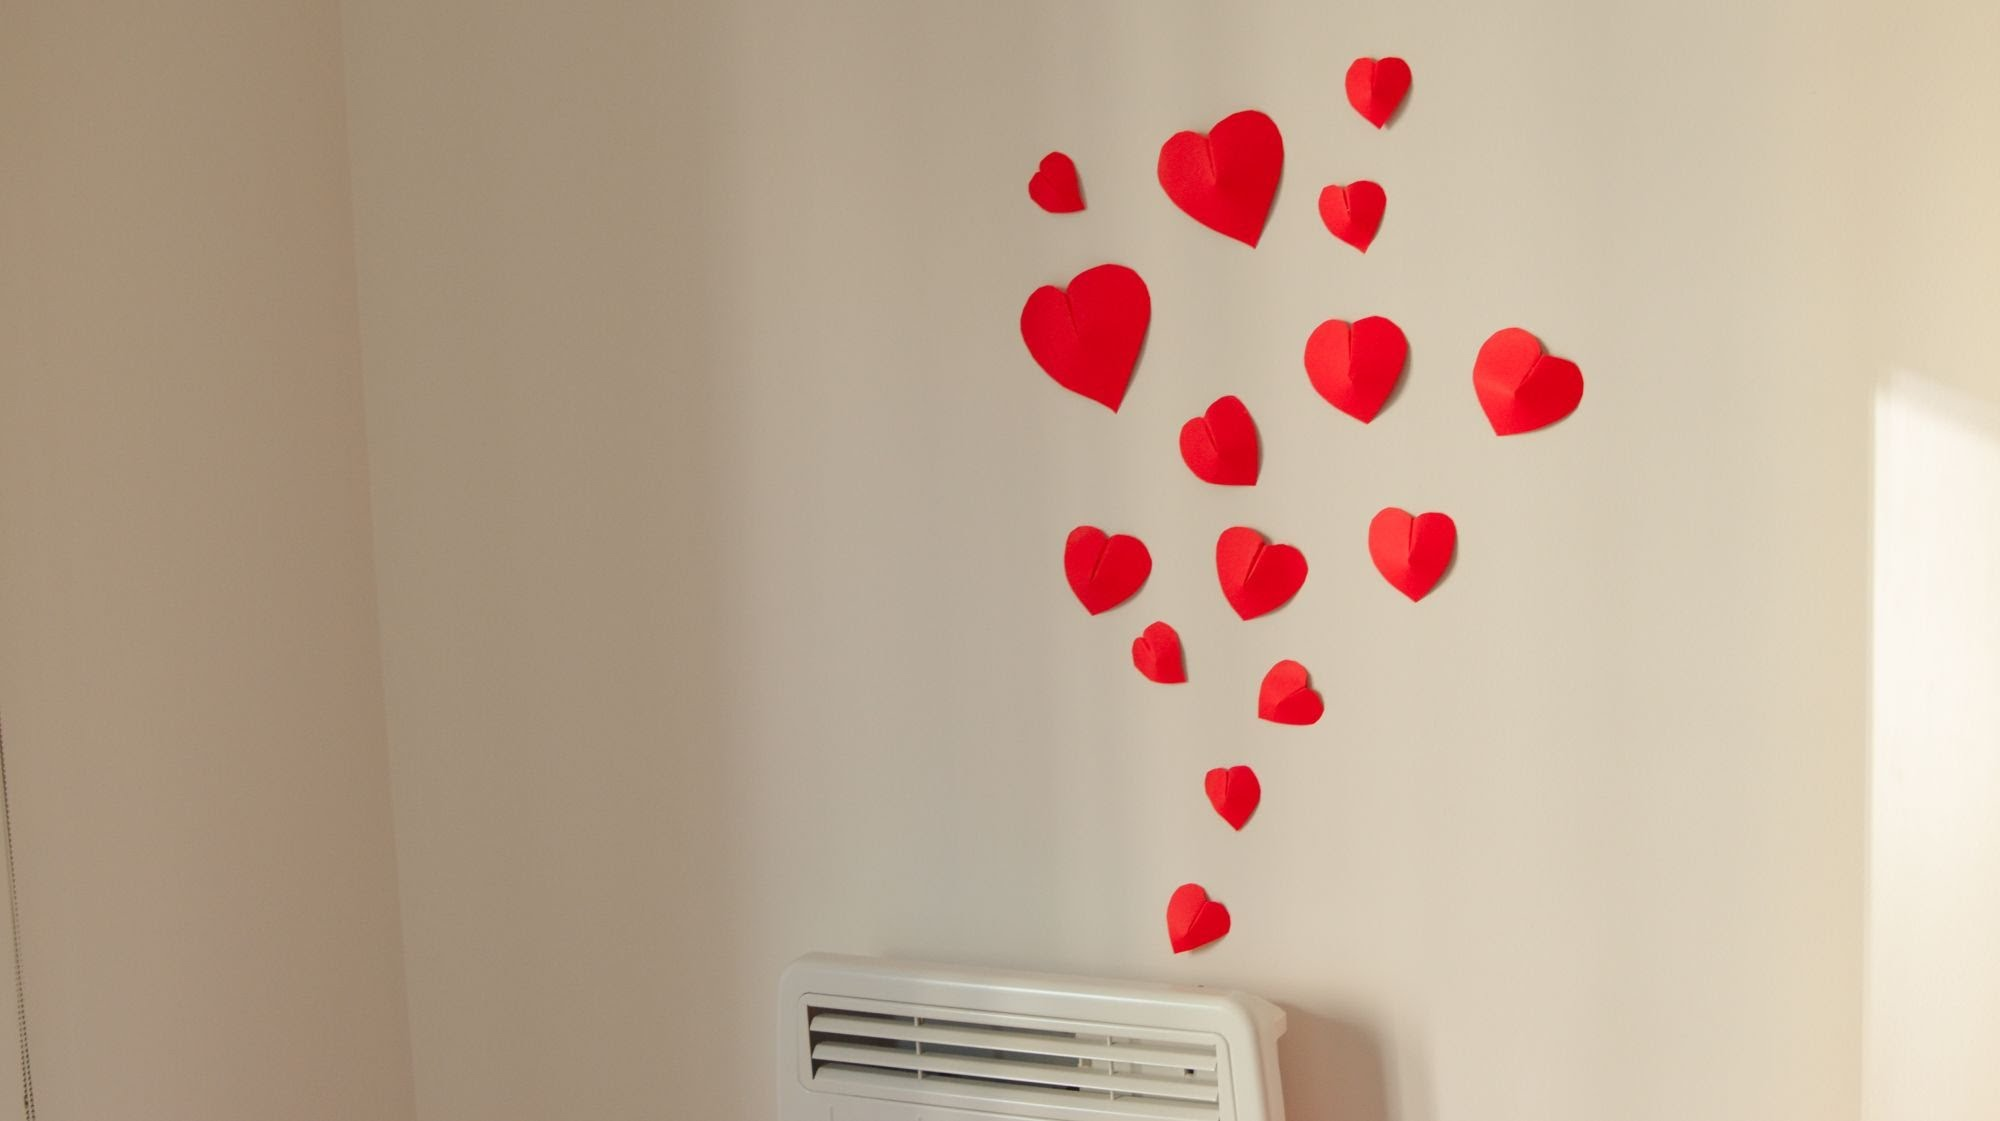 Lovely Red Hearts as Enchanting Wall Decoration Ideas on White Painted Wall in Minimalist Room